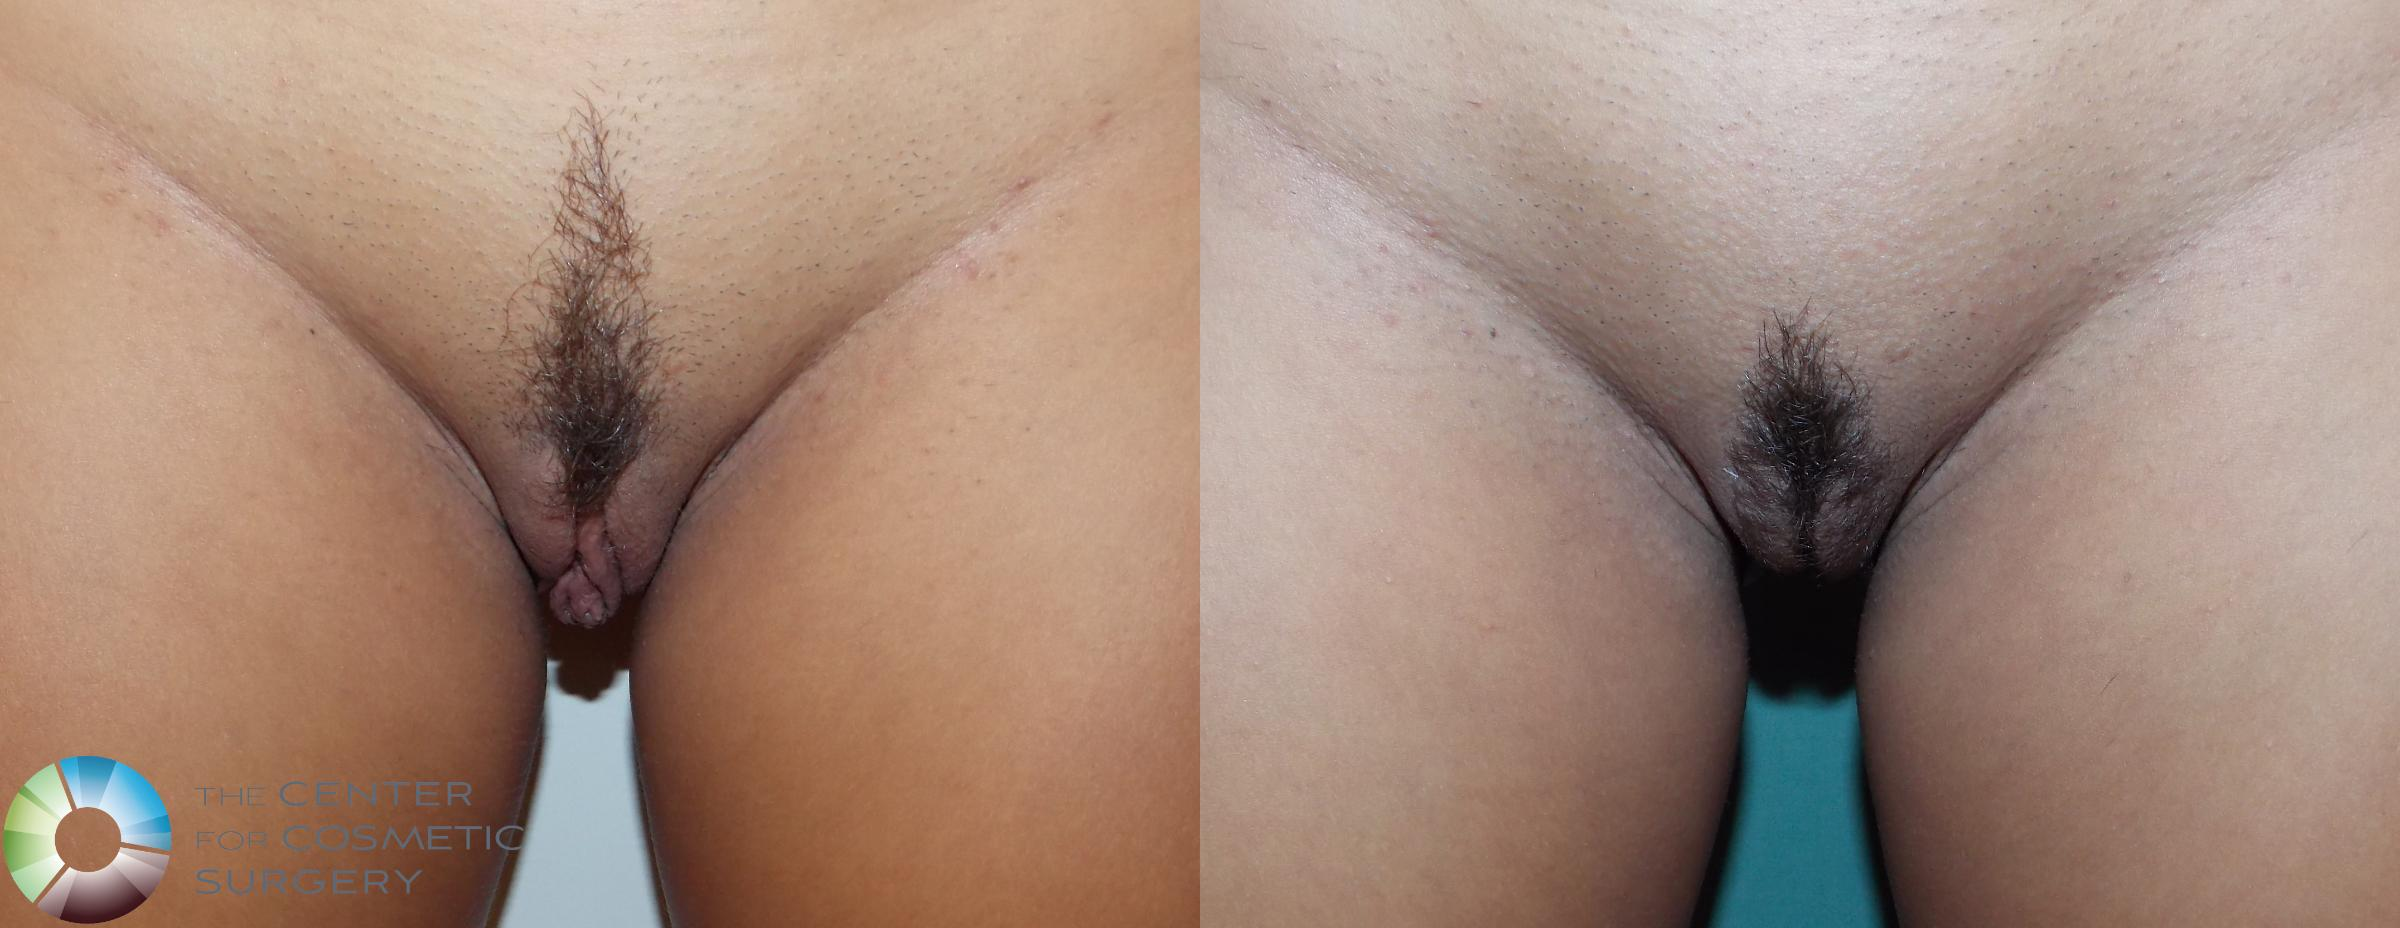 Labiaplasty Case 739 Before & After View #1 | Golden, CO | The Center for Cosmetic Surgery